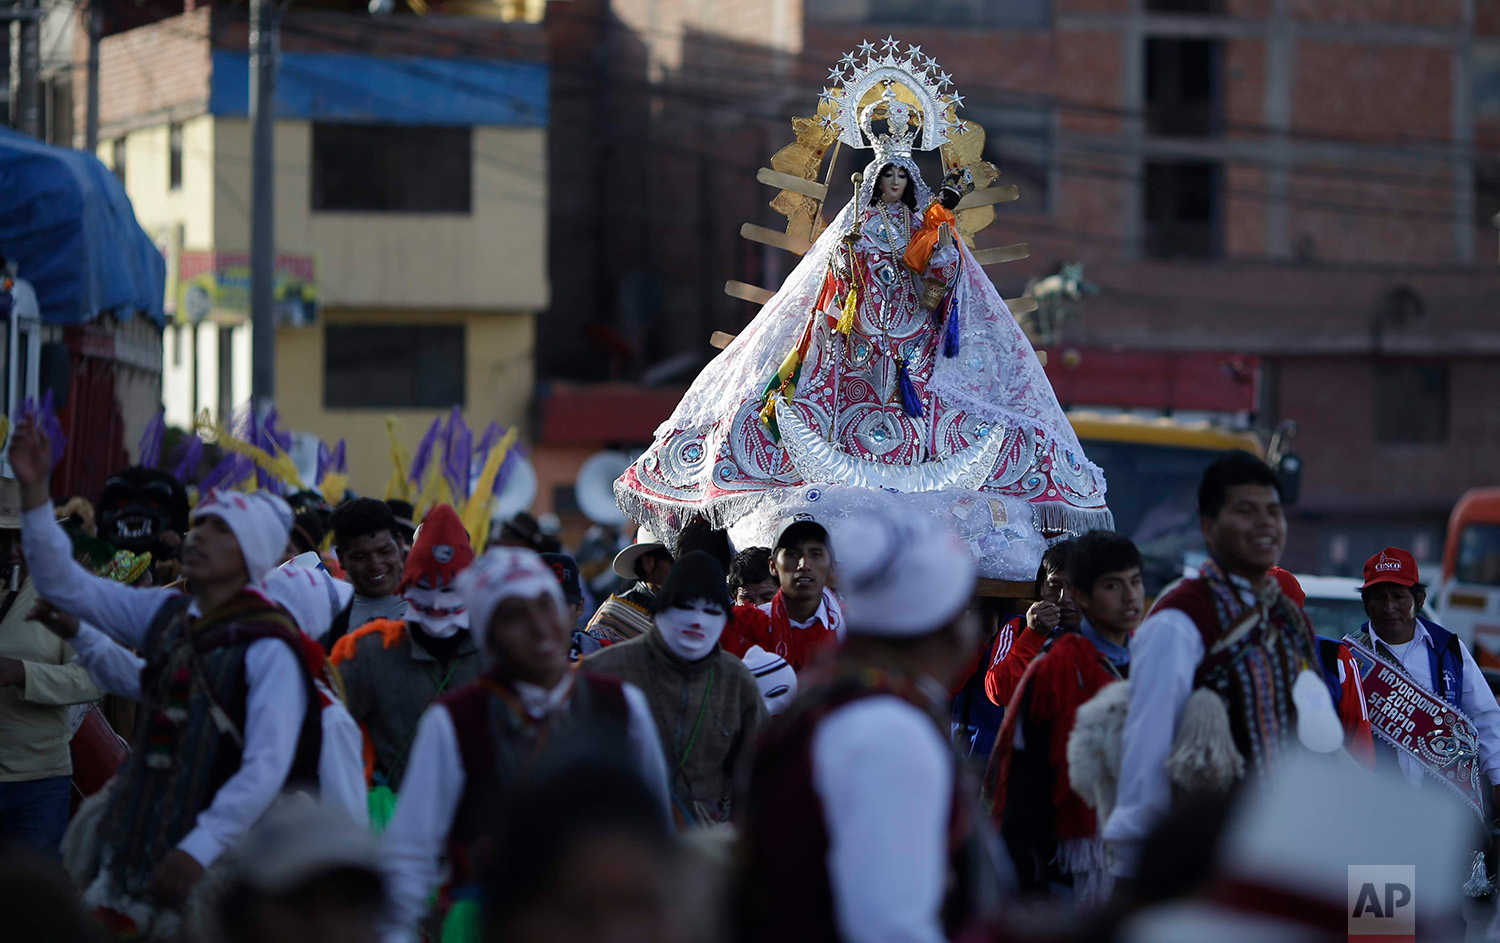 Devotees take part in a religious procession honoring Our Lady of Copacabana, in Cuzco, Peru, Aug. 5, 2018. The veneration of Bolivia's patron saint in Cuzco began a decade ago with a small feast among friends and family.  (AP Photo/Martin Mejia)